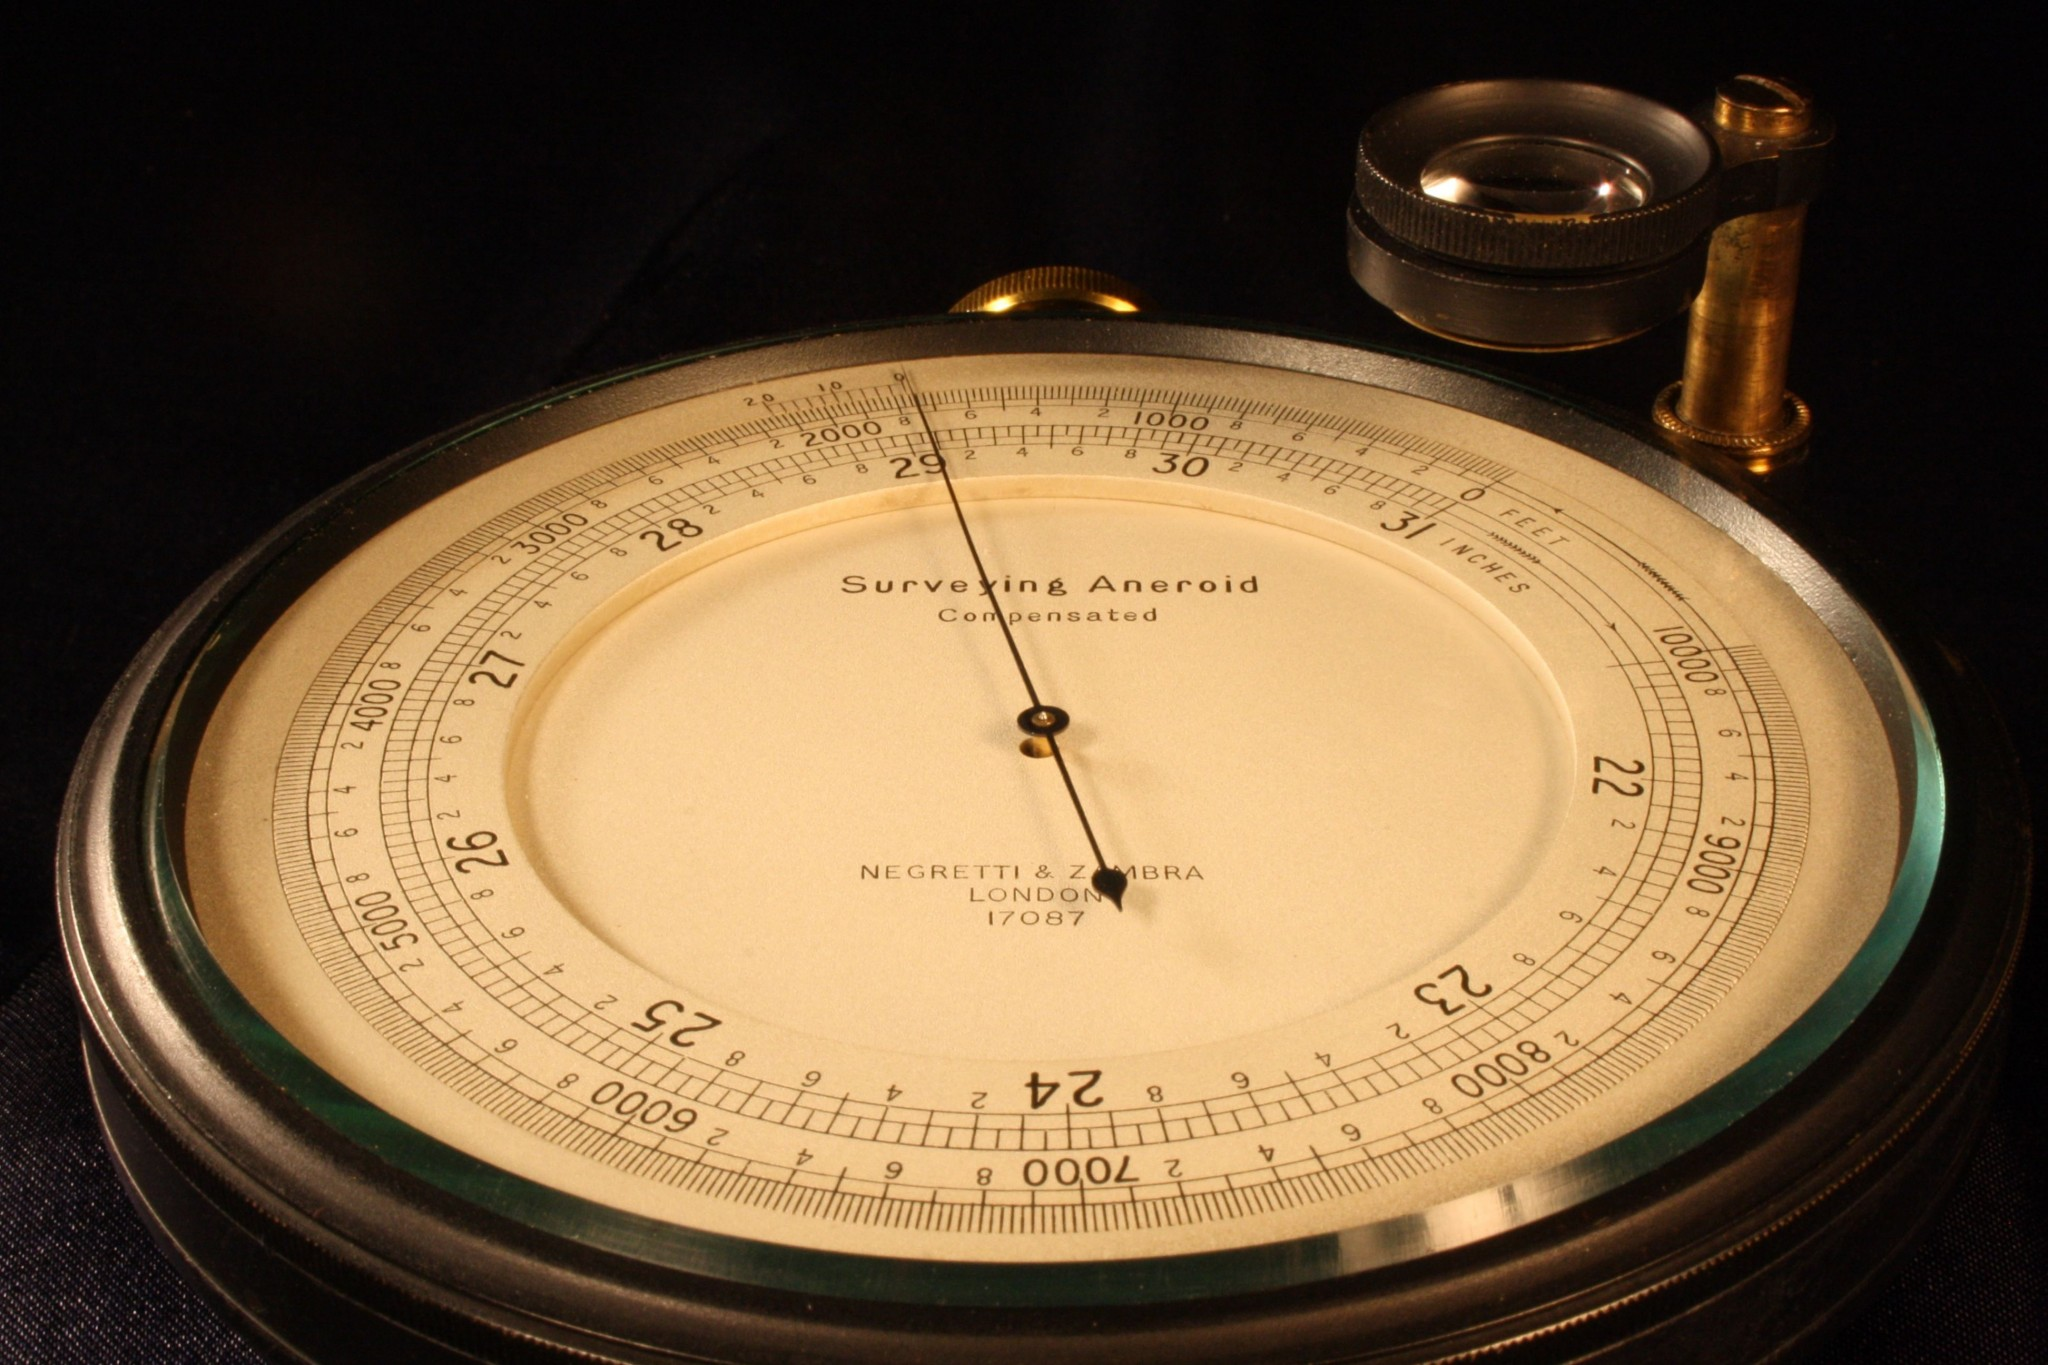 Image of Negretti & Zambra Surveying Barometer